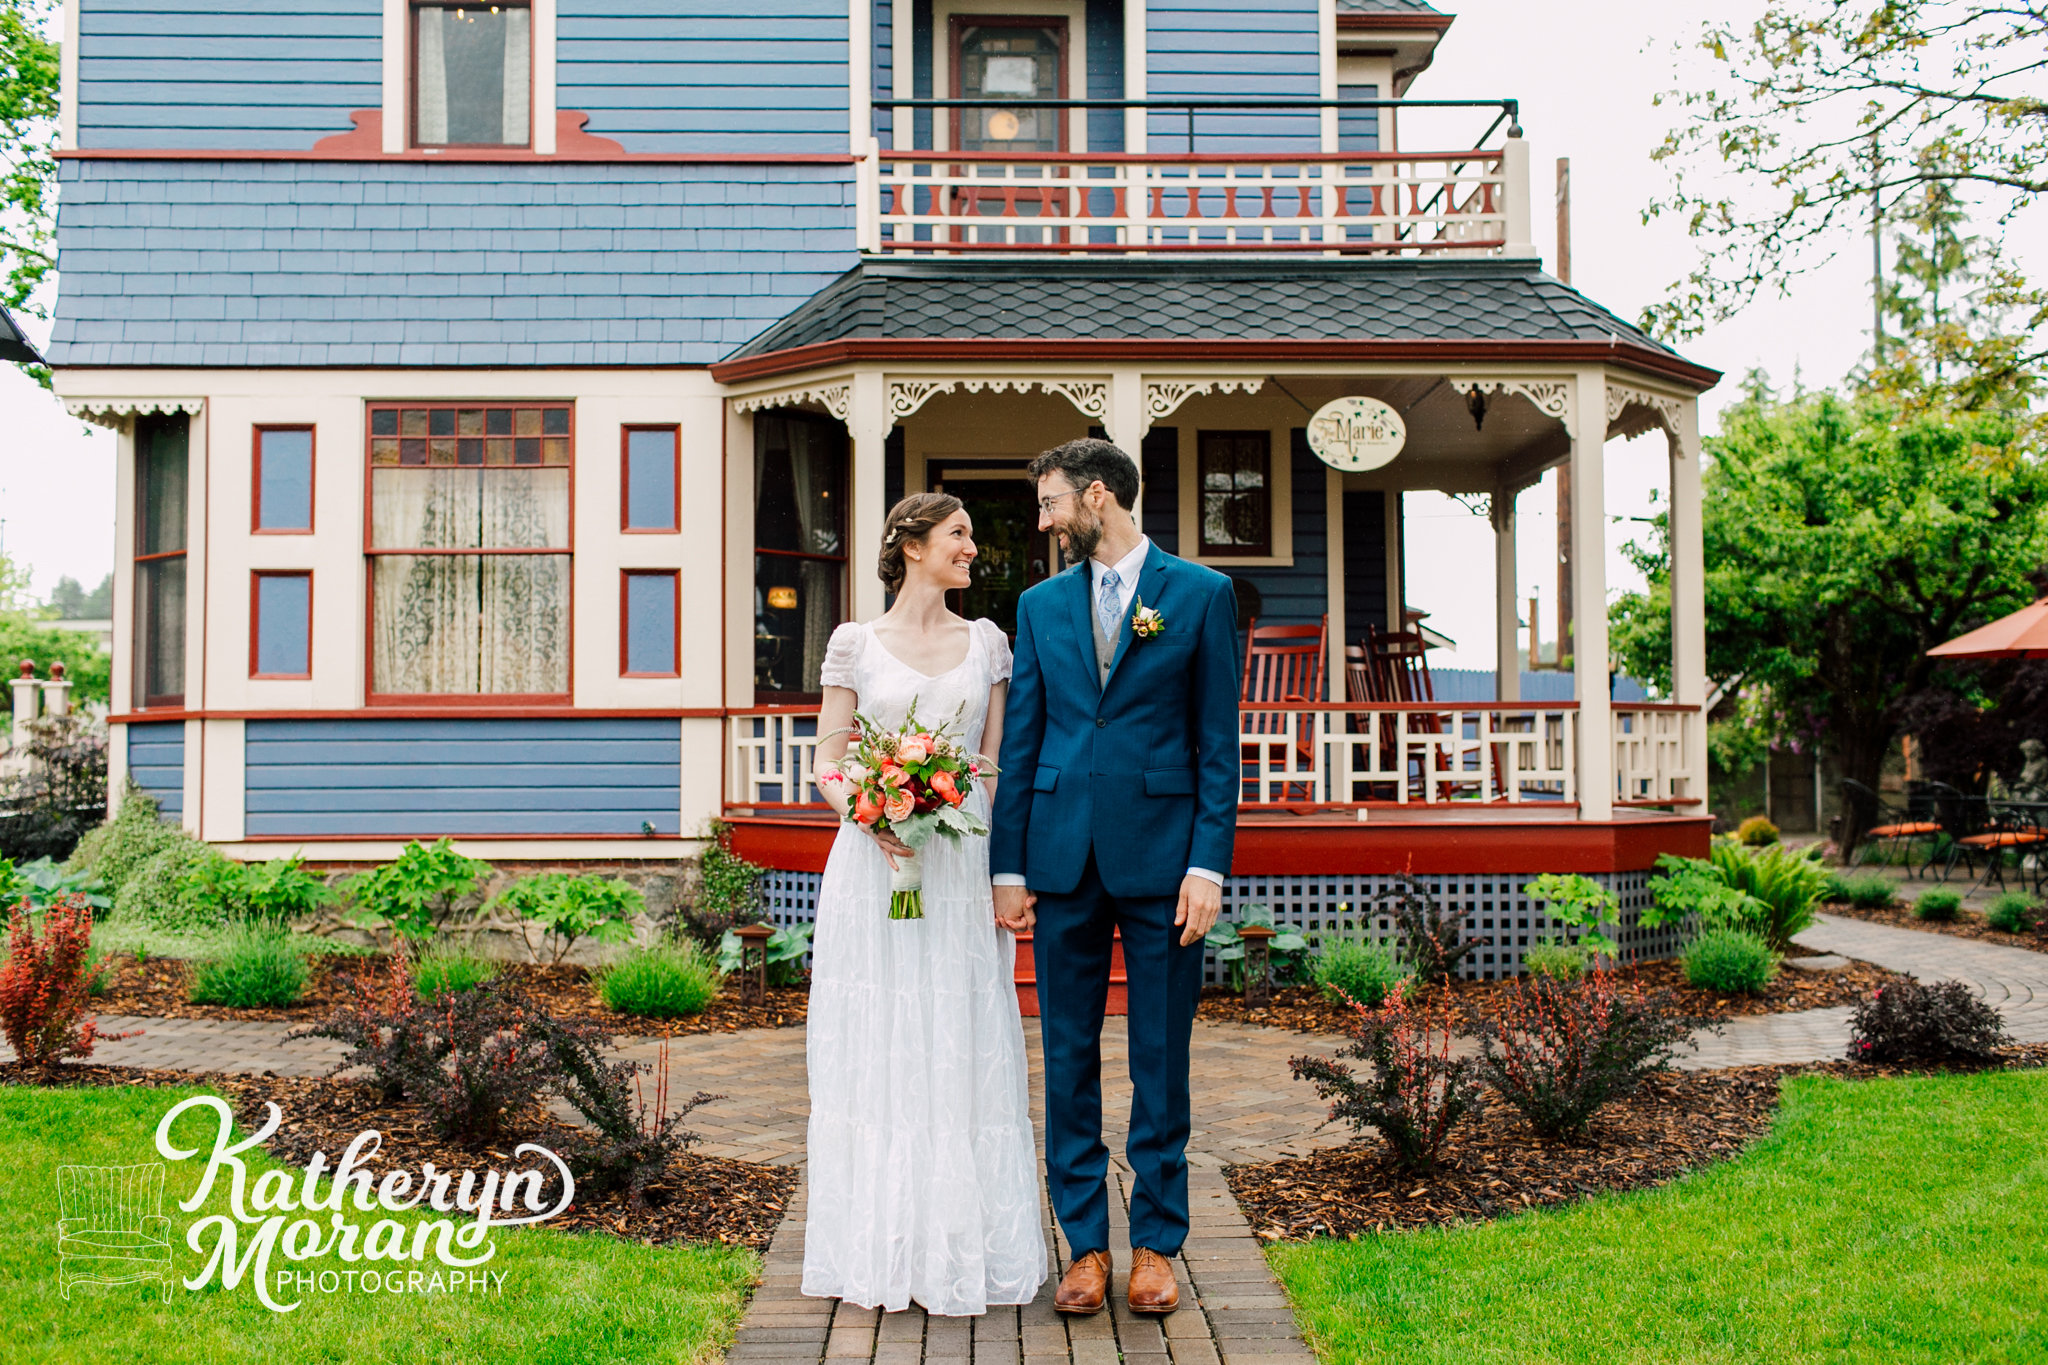 Bellingham Wedding Photographer, Seattle Wedding photographer, Bellingham Engagement Photographer, Katheryn Moran